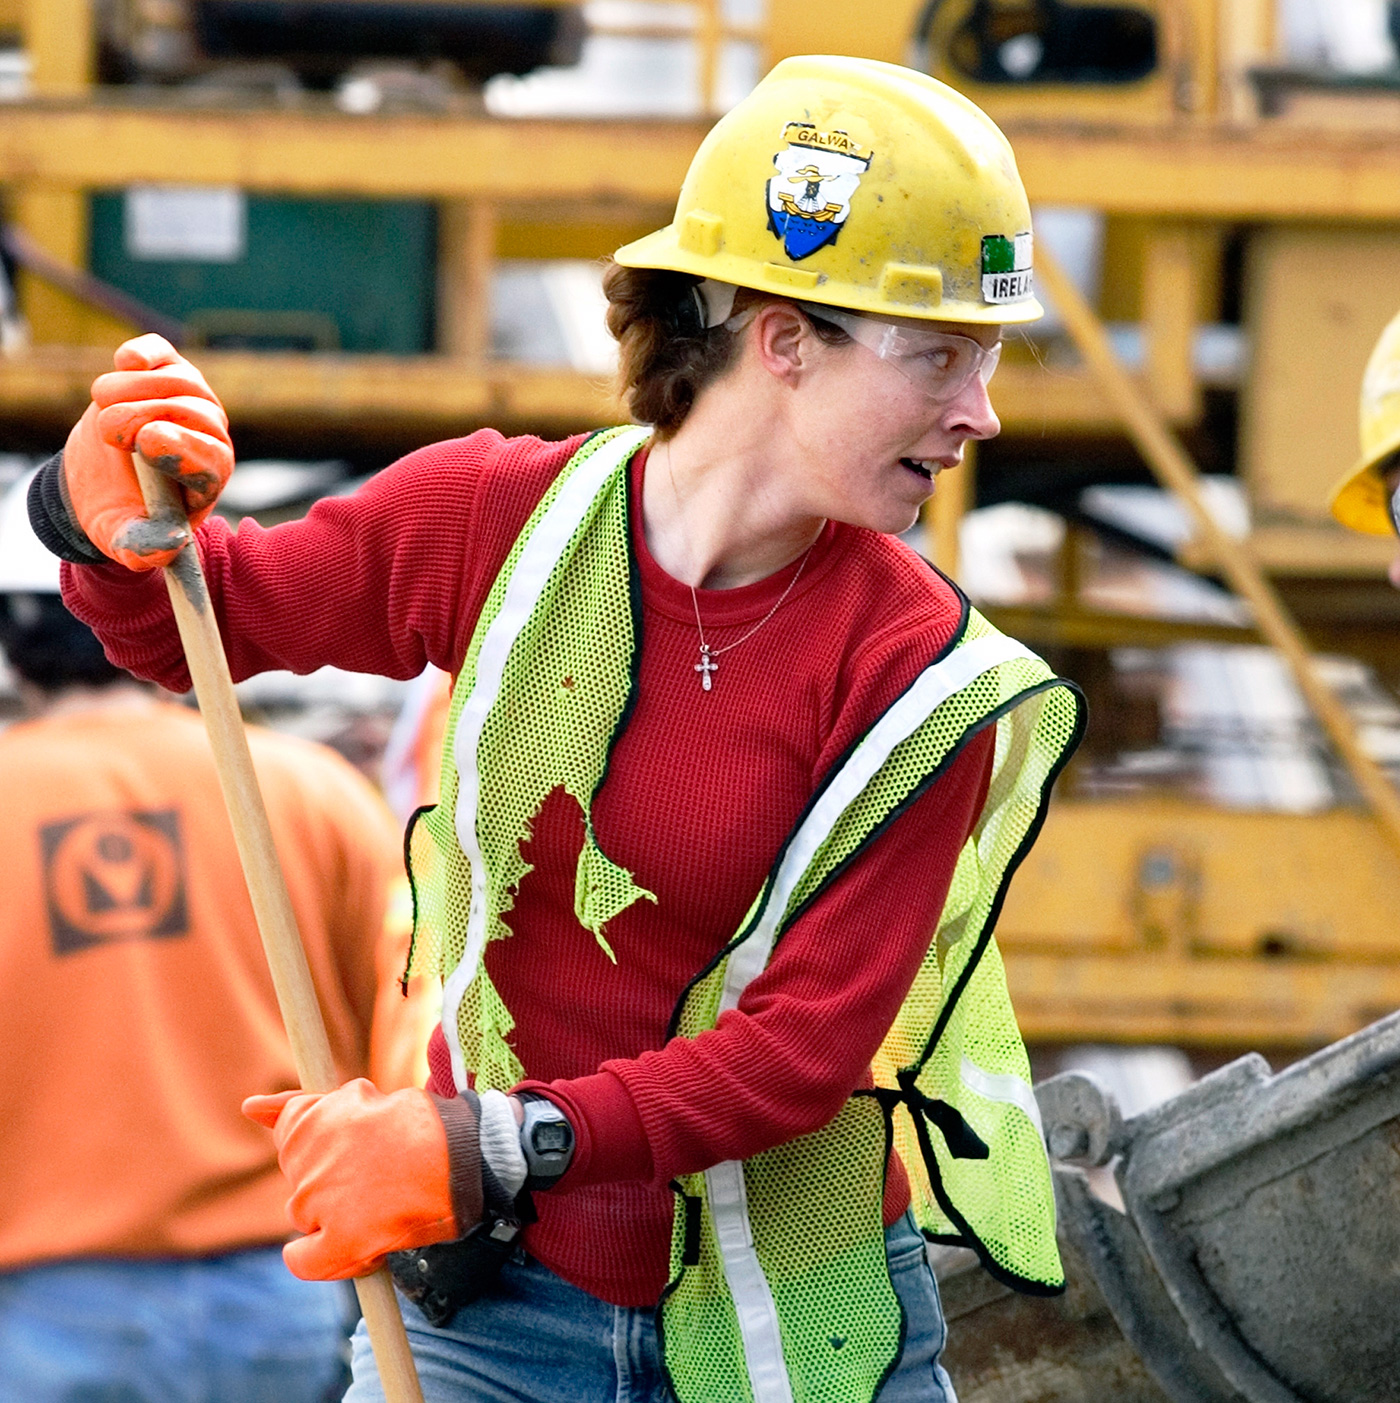 A young woman wearing safety gloves, hard hat and safety vest holds a broom. Future of Work photos by Paul Shoul woman construction